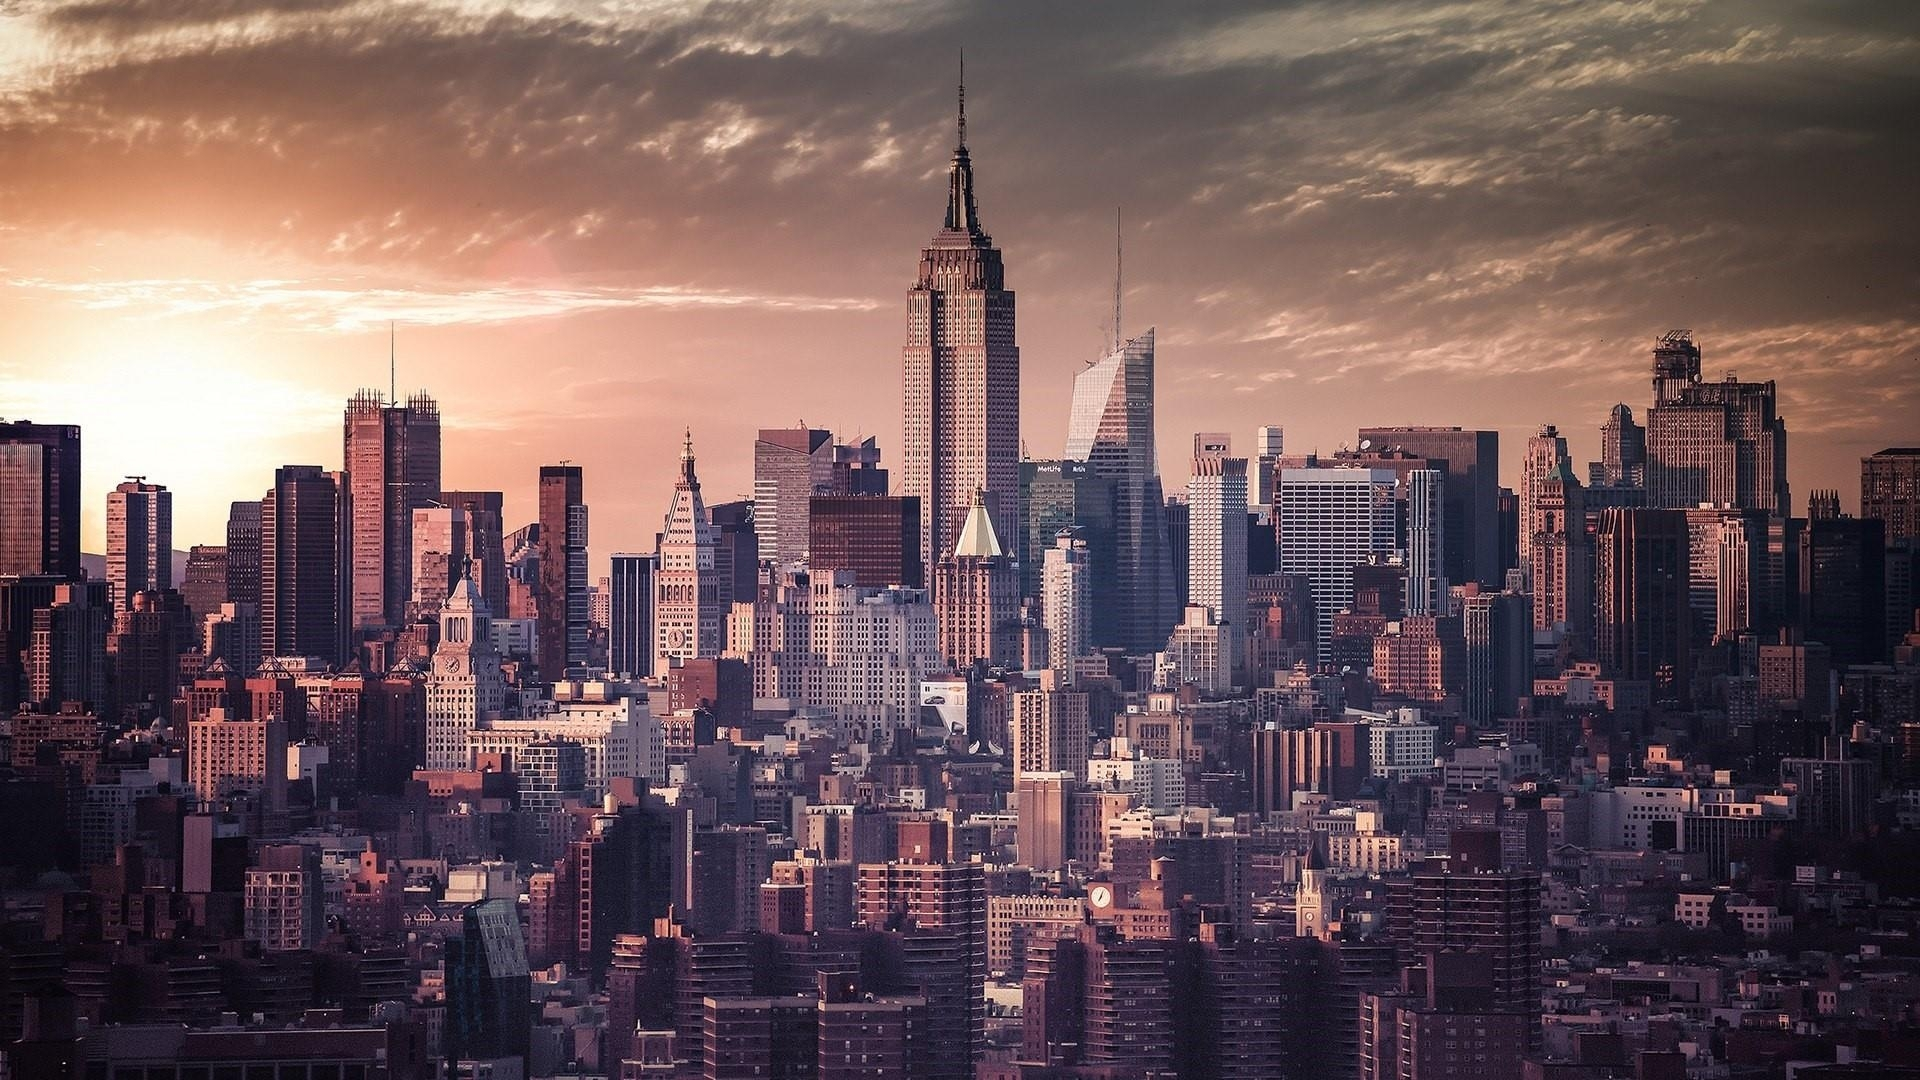 manhattan skyline (new york city) wallpaper | wallpaper studio 10